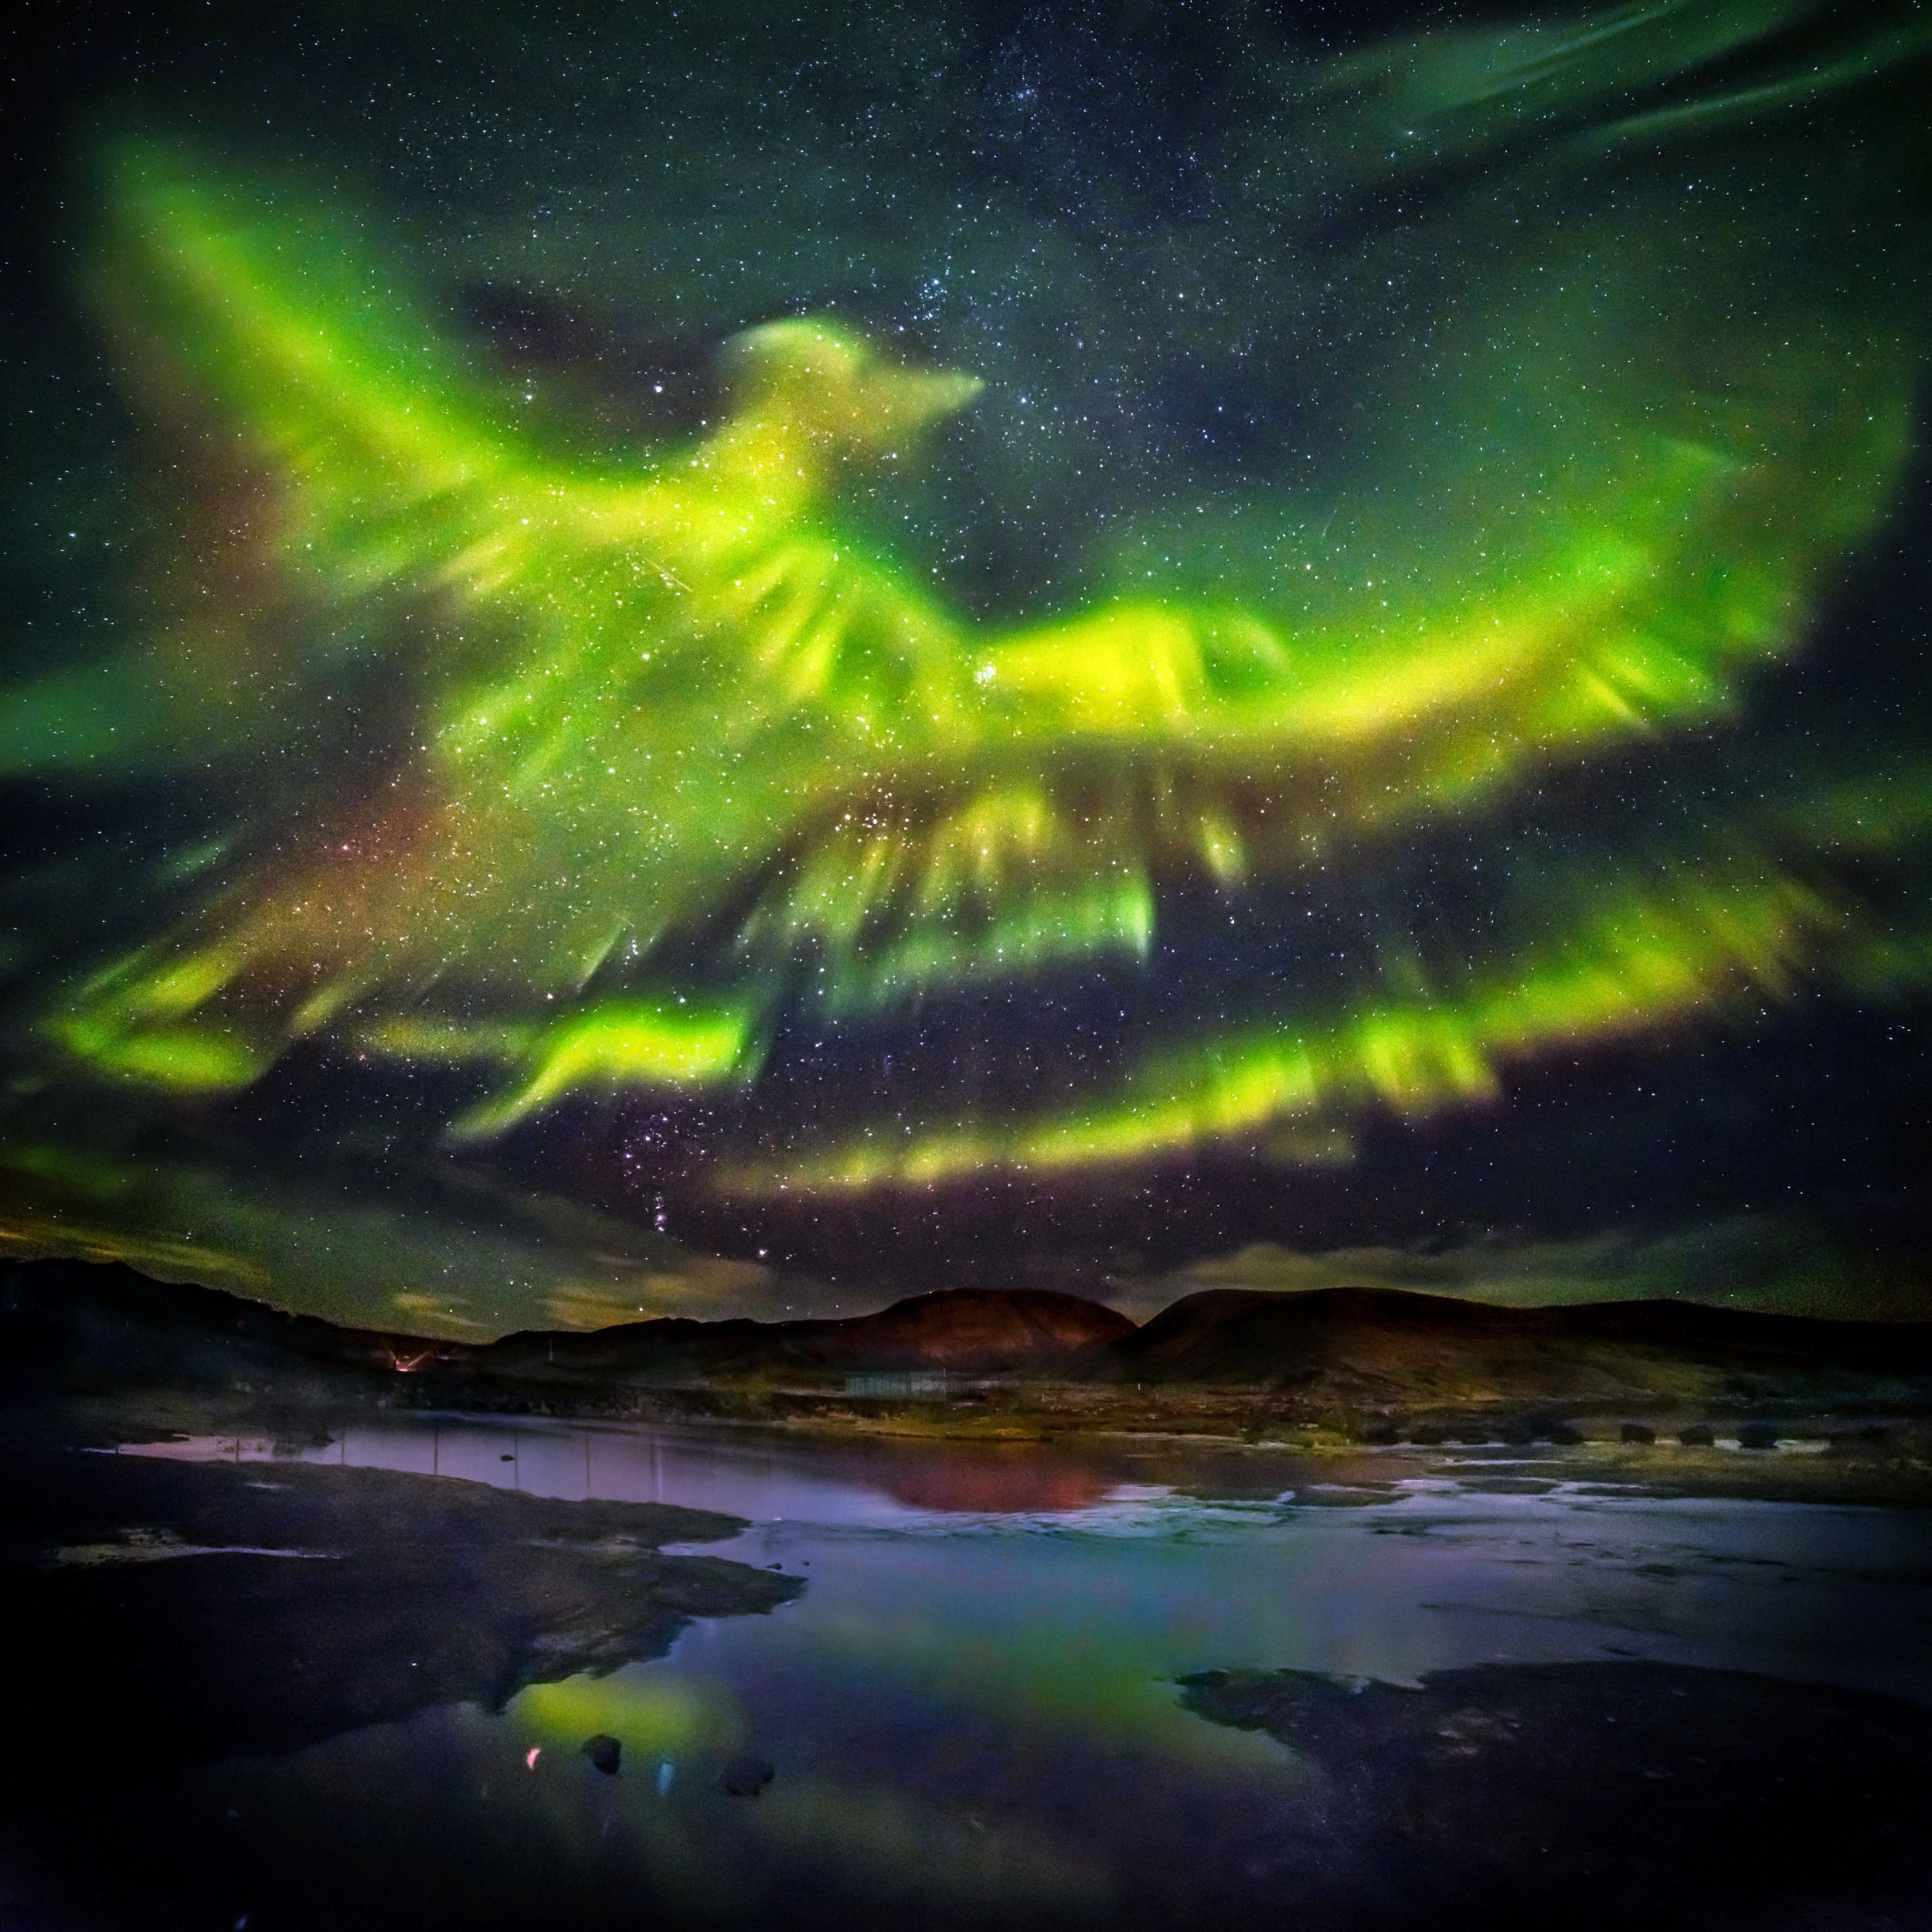 PIC BY HALLGRIMUR P. HELGASON/ CATERS NEWS - (PICTURED: the aurora borealis in the shape of a huge phoenix) - These dramatic images of the aurora borealis have captured what appears to be a huge PHOENIX rising from the ground and flying over Iceland. With outstretched wings and a striking profile the mythical creature, captured by photographer Hallgrimur P. Helgason, wowed stargazers in Kaldrsel. Hallgrimur, 64, said that the bird showed up in the night sky an hour after he got there and started snapping. He said: Its really a thrill shooting the aurora, especially when they are so playful like they were that night. SEE CATERS COPY.